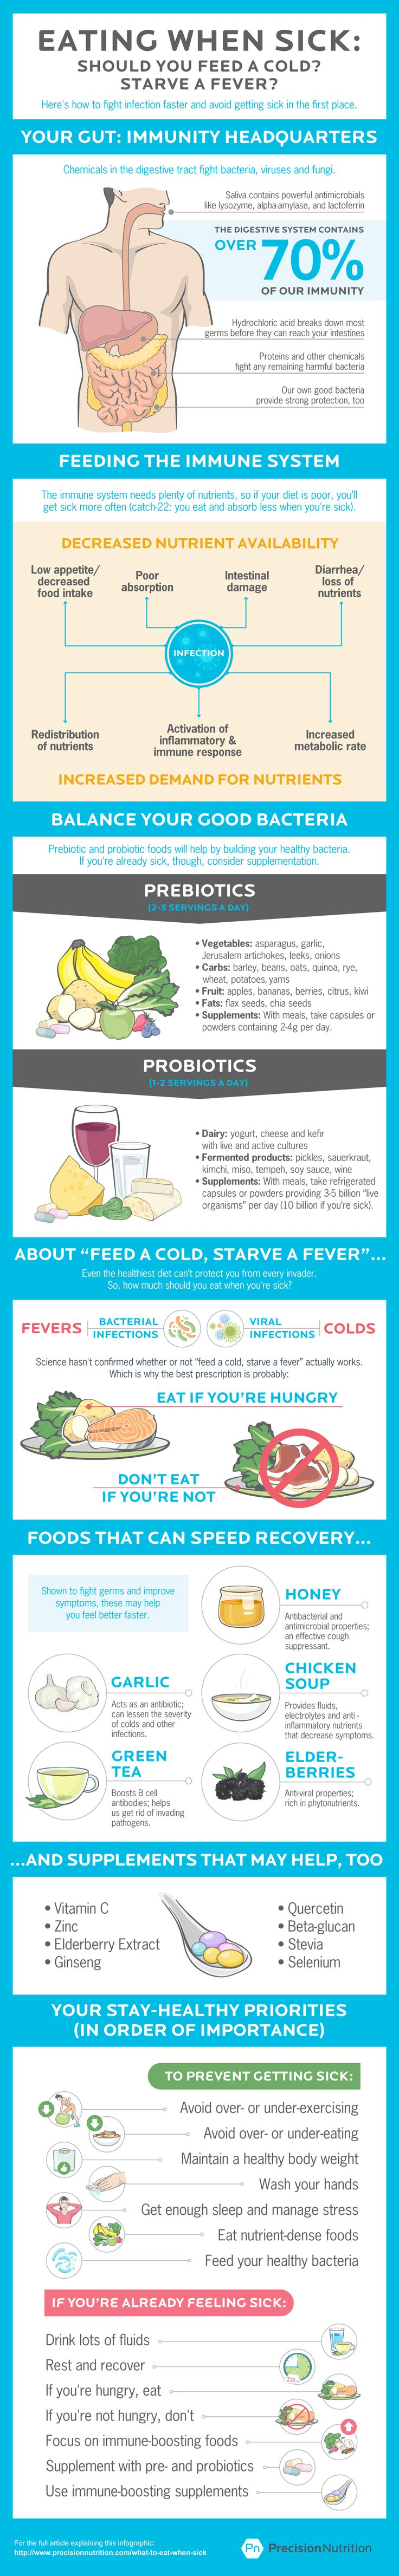 precision nutrition what to eat when sick image What should you eat when sick? [Infographic] Foods that help you fight bugs faster (and avoid catching them at all).